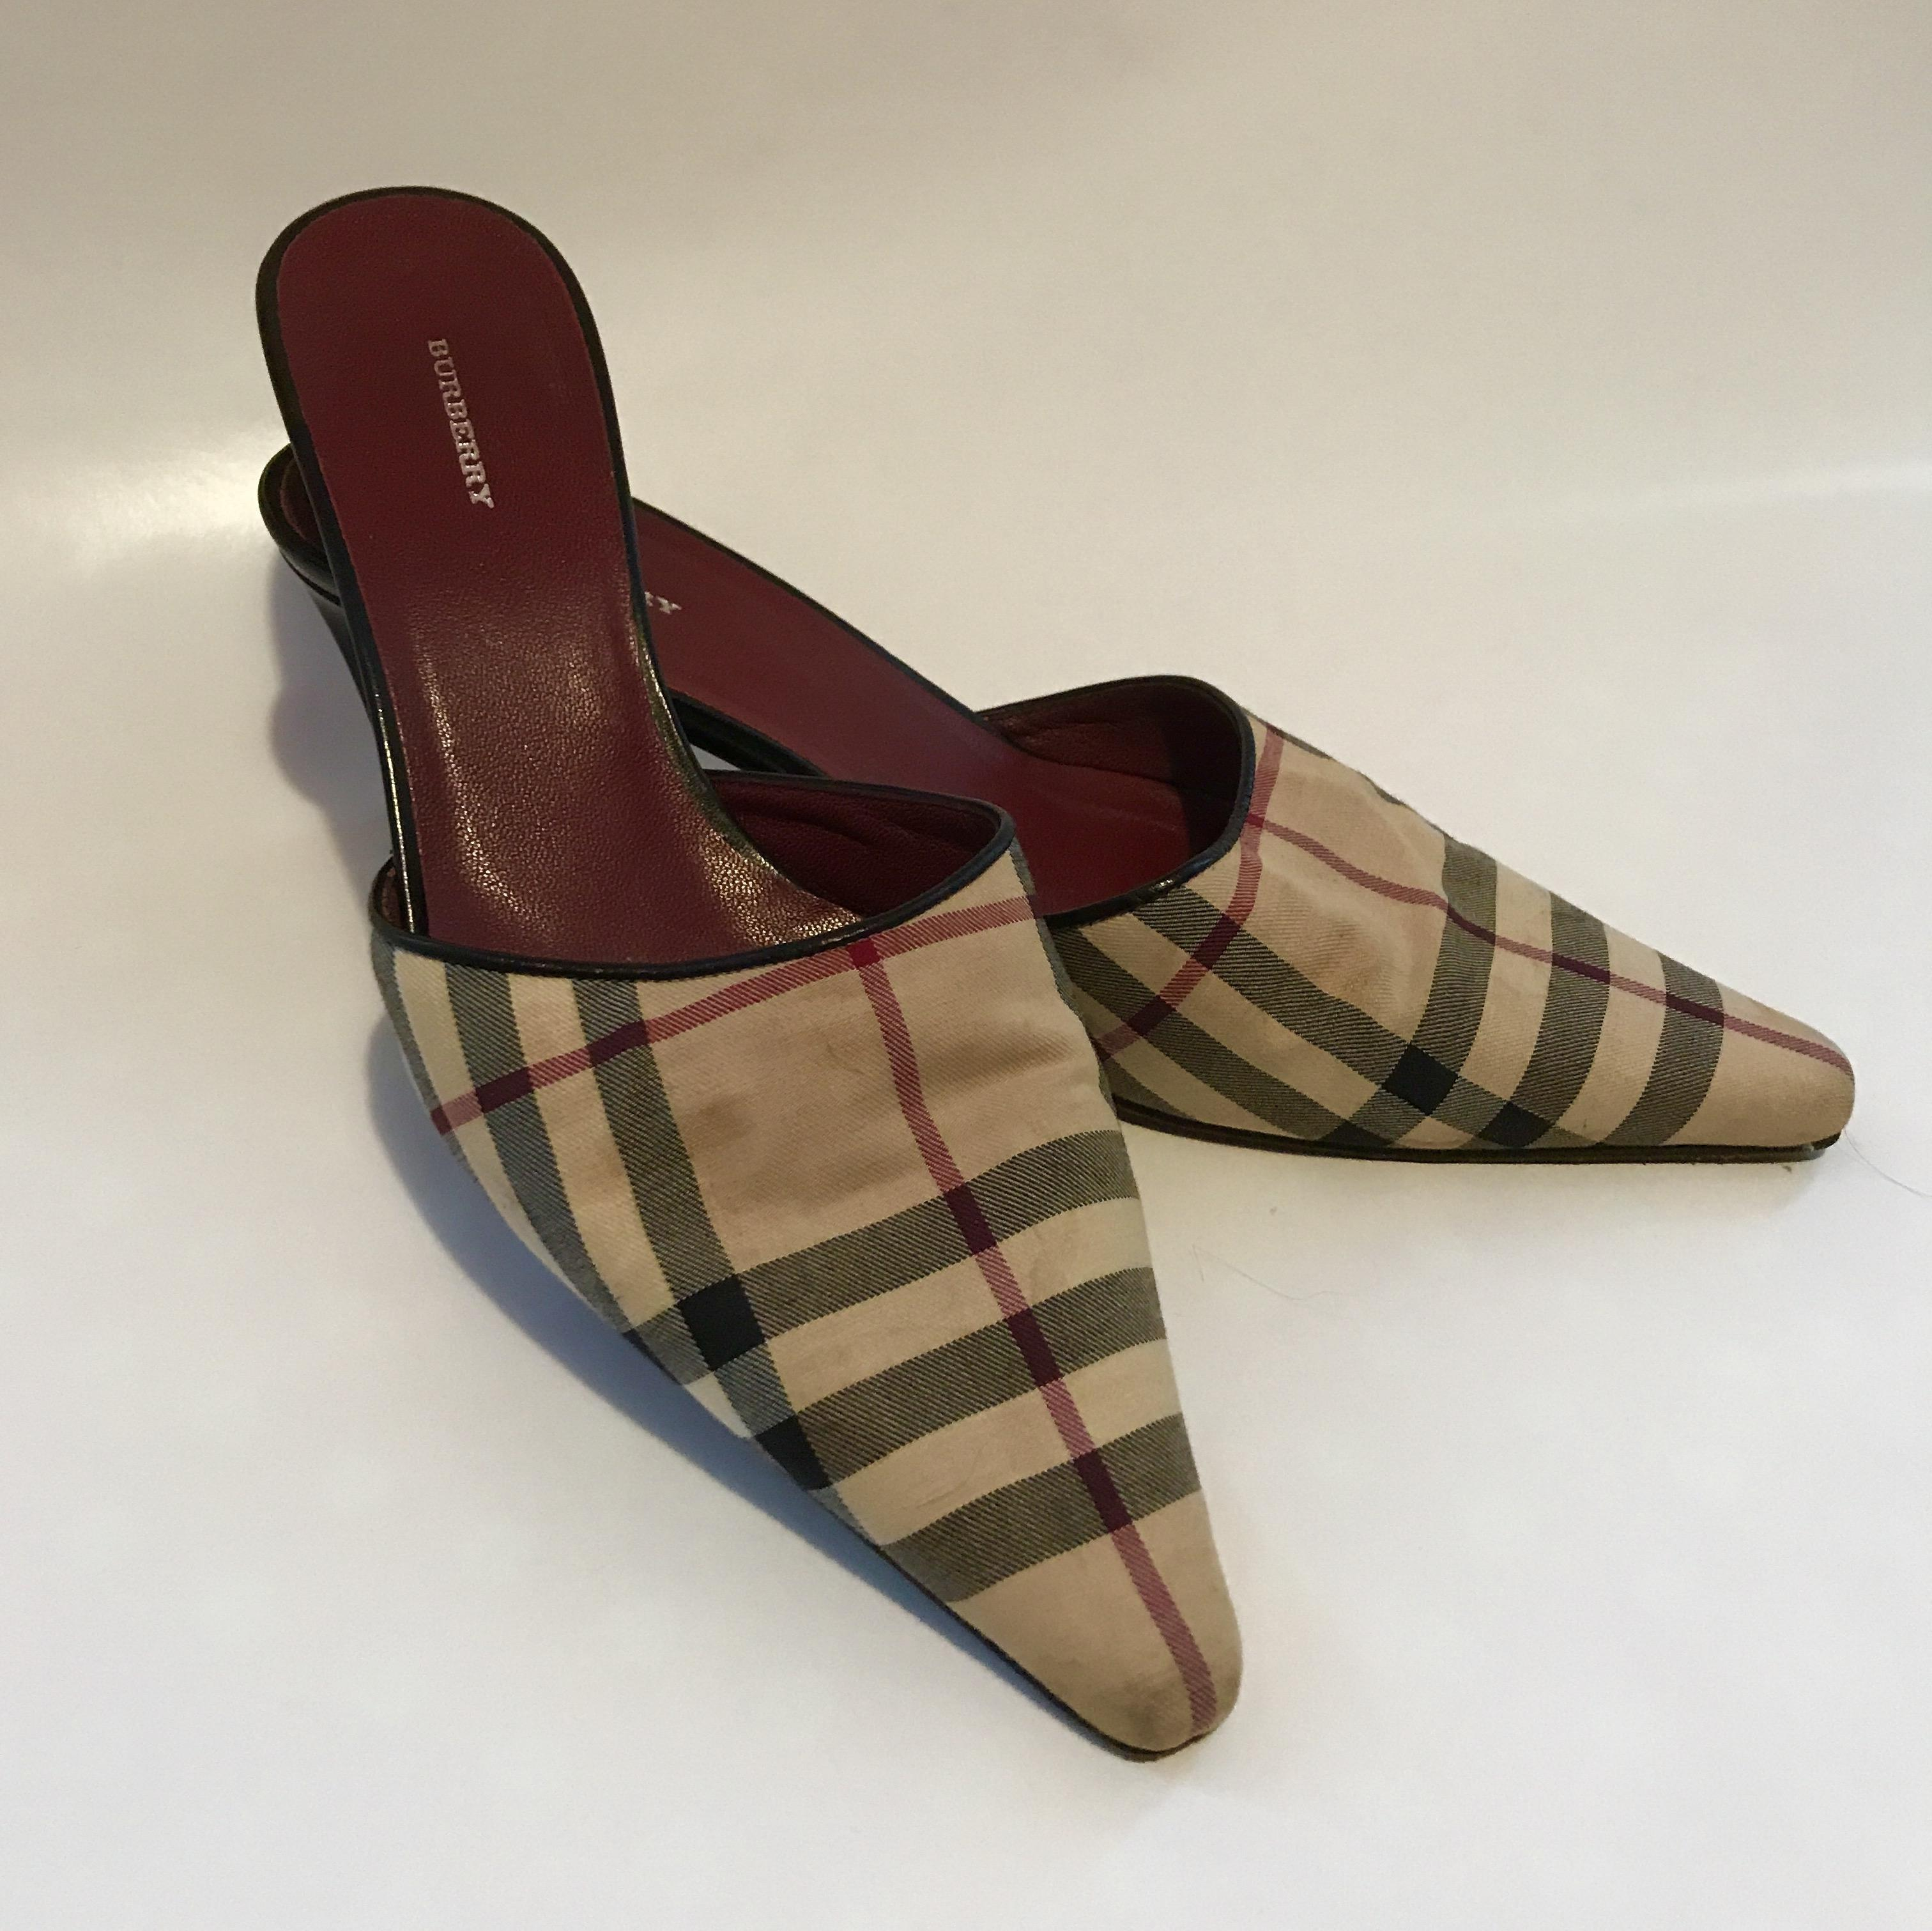 Burberry Pointed-Toe Leather Mules outlet 2014 newest amazon for sale MFkCNIit